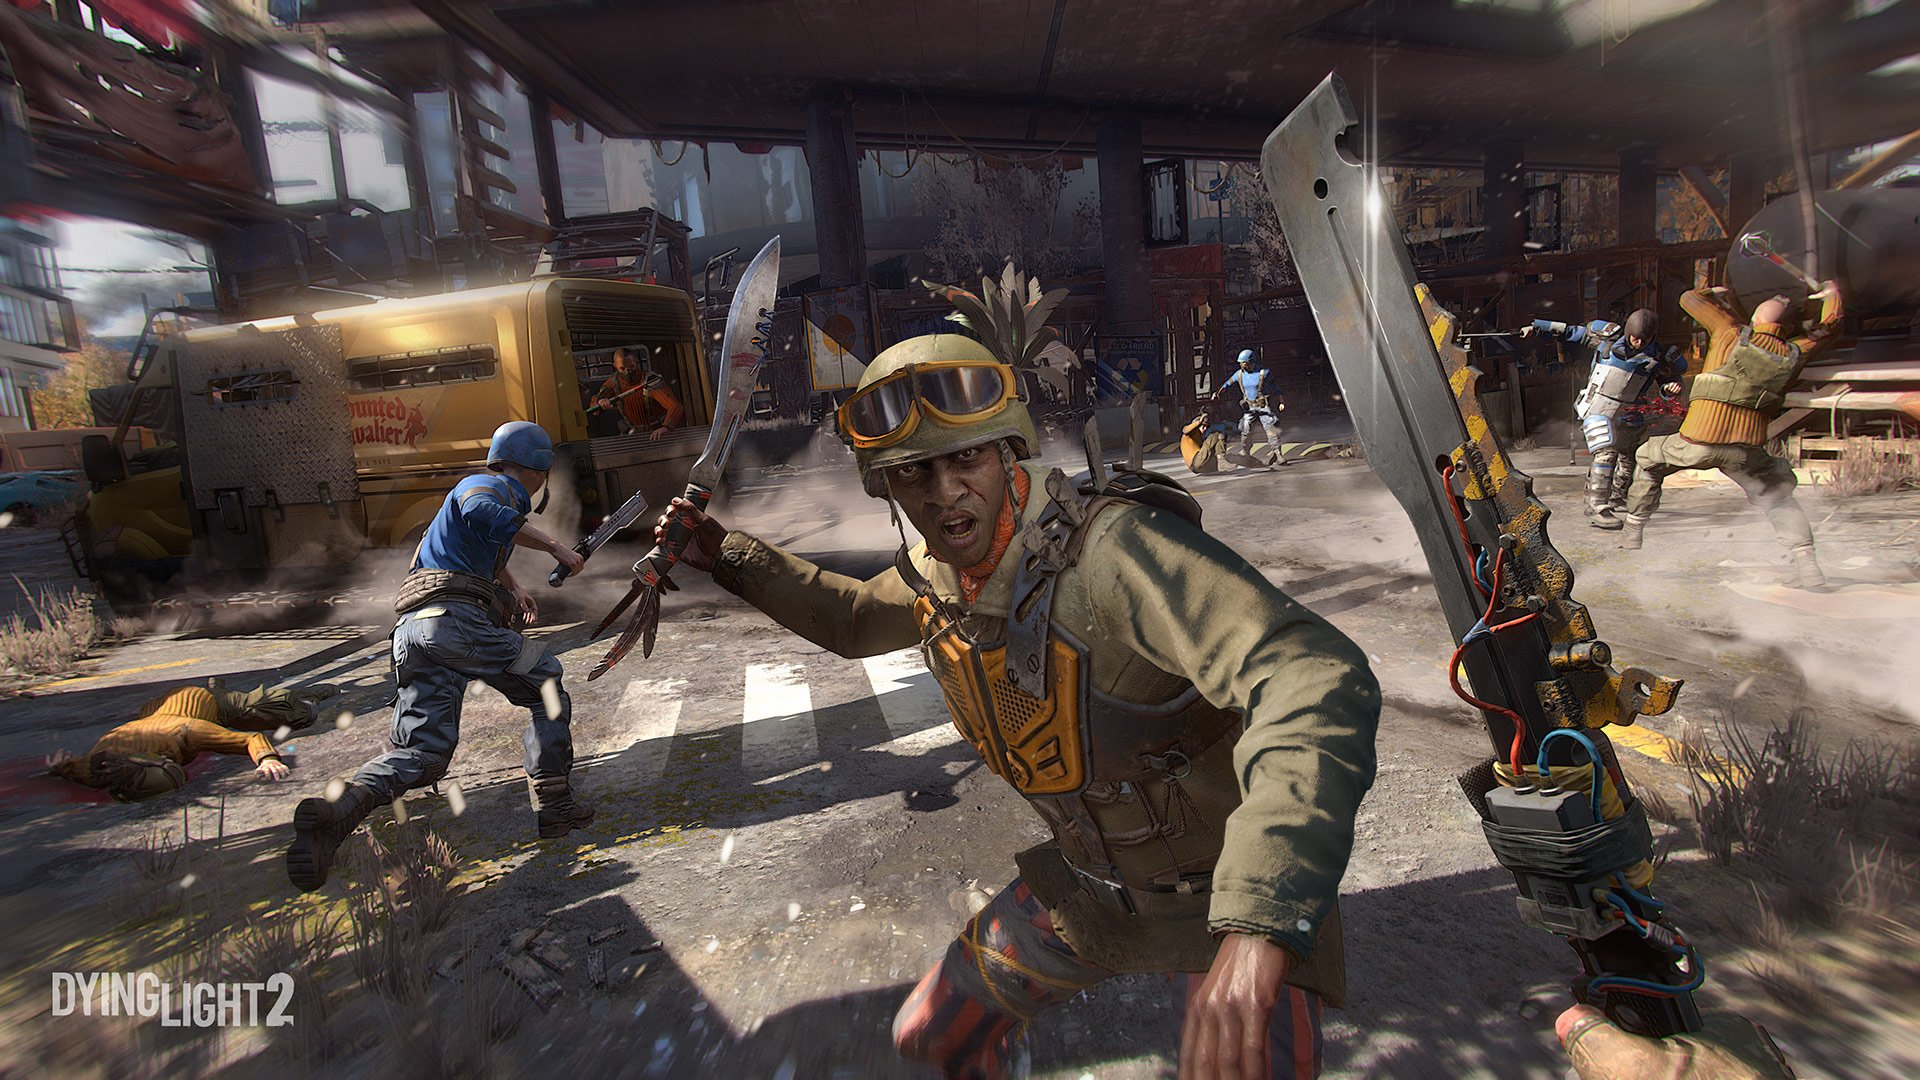 Bad News For All Of You Post-Apocalyptic Zombie Survival Fans: Dying Light 2's Release Has Been Delayed